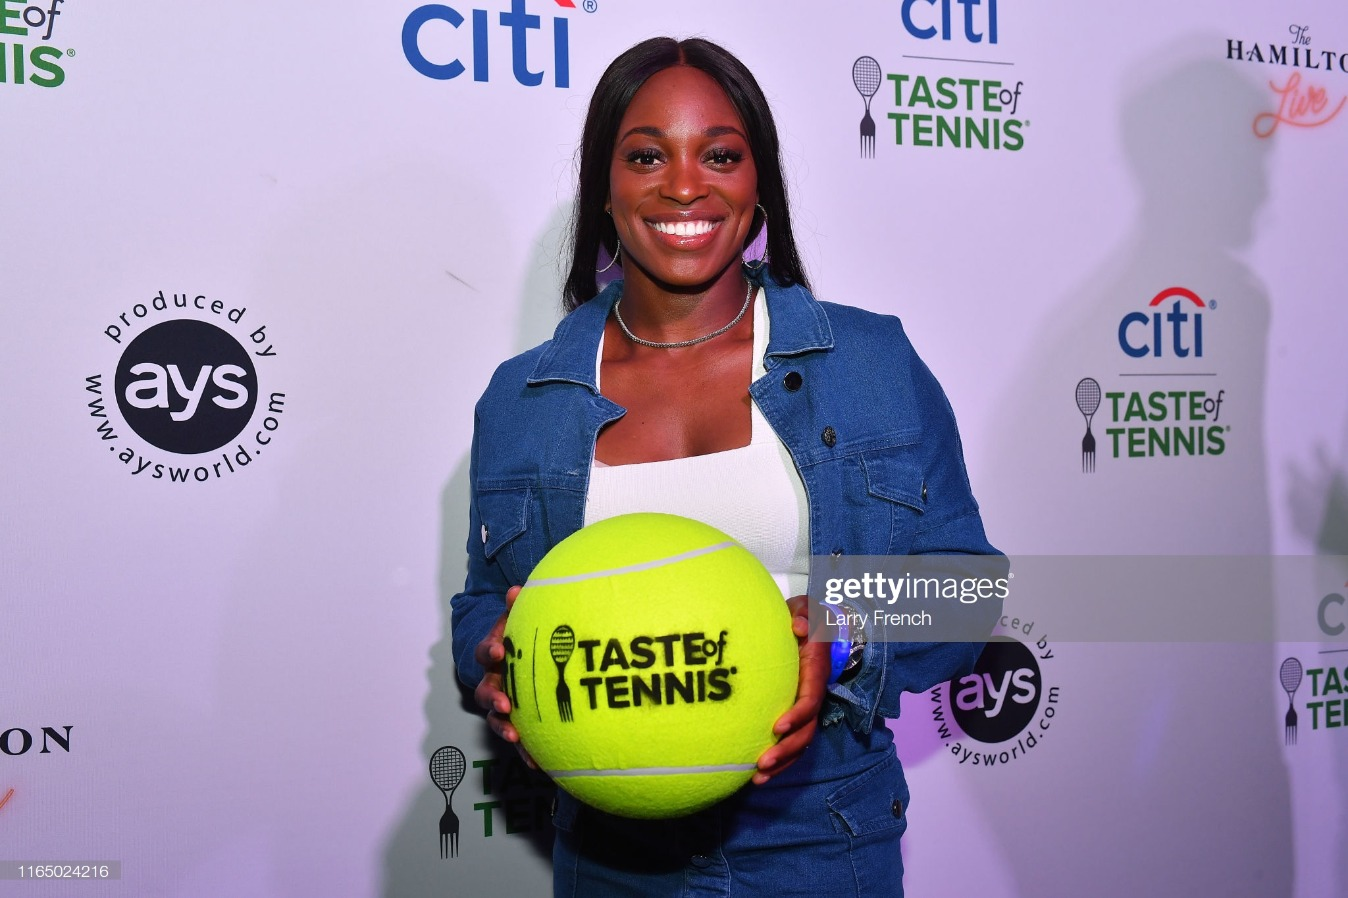 Citi Taste Of Tennis - Washington D.C : News Photo